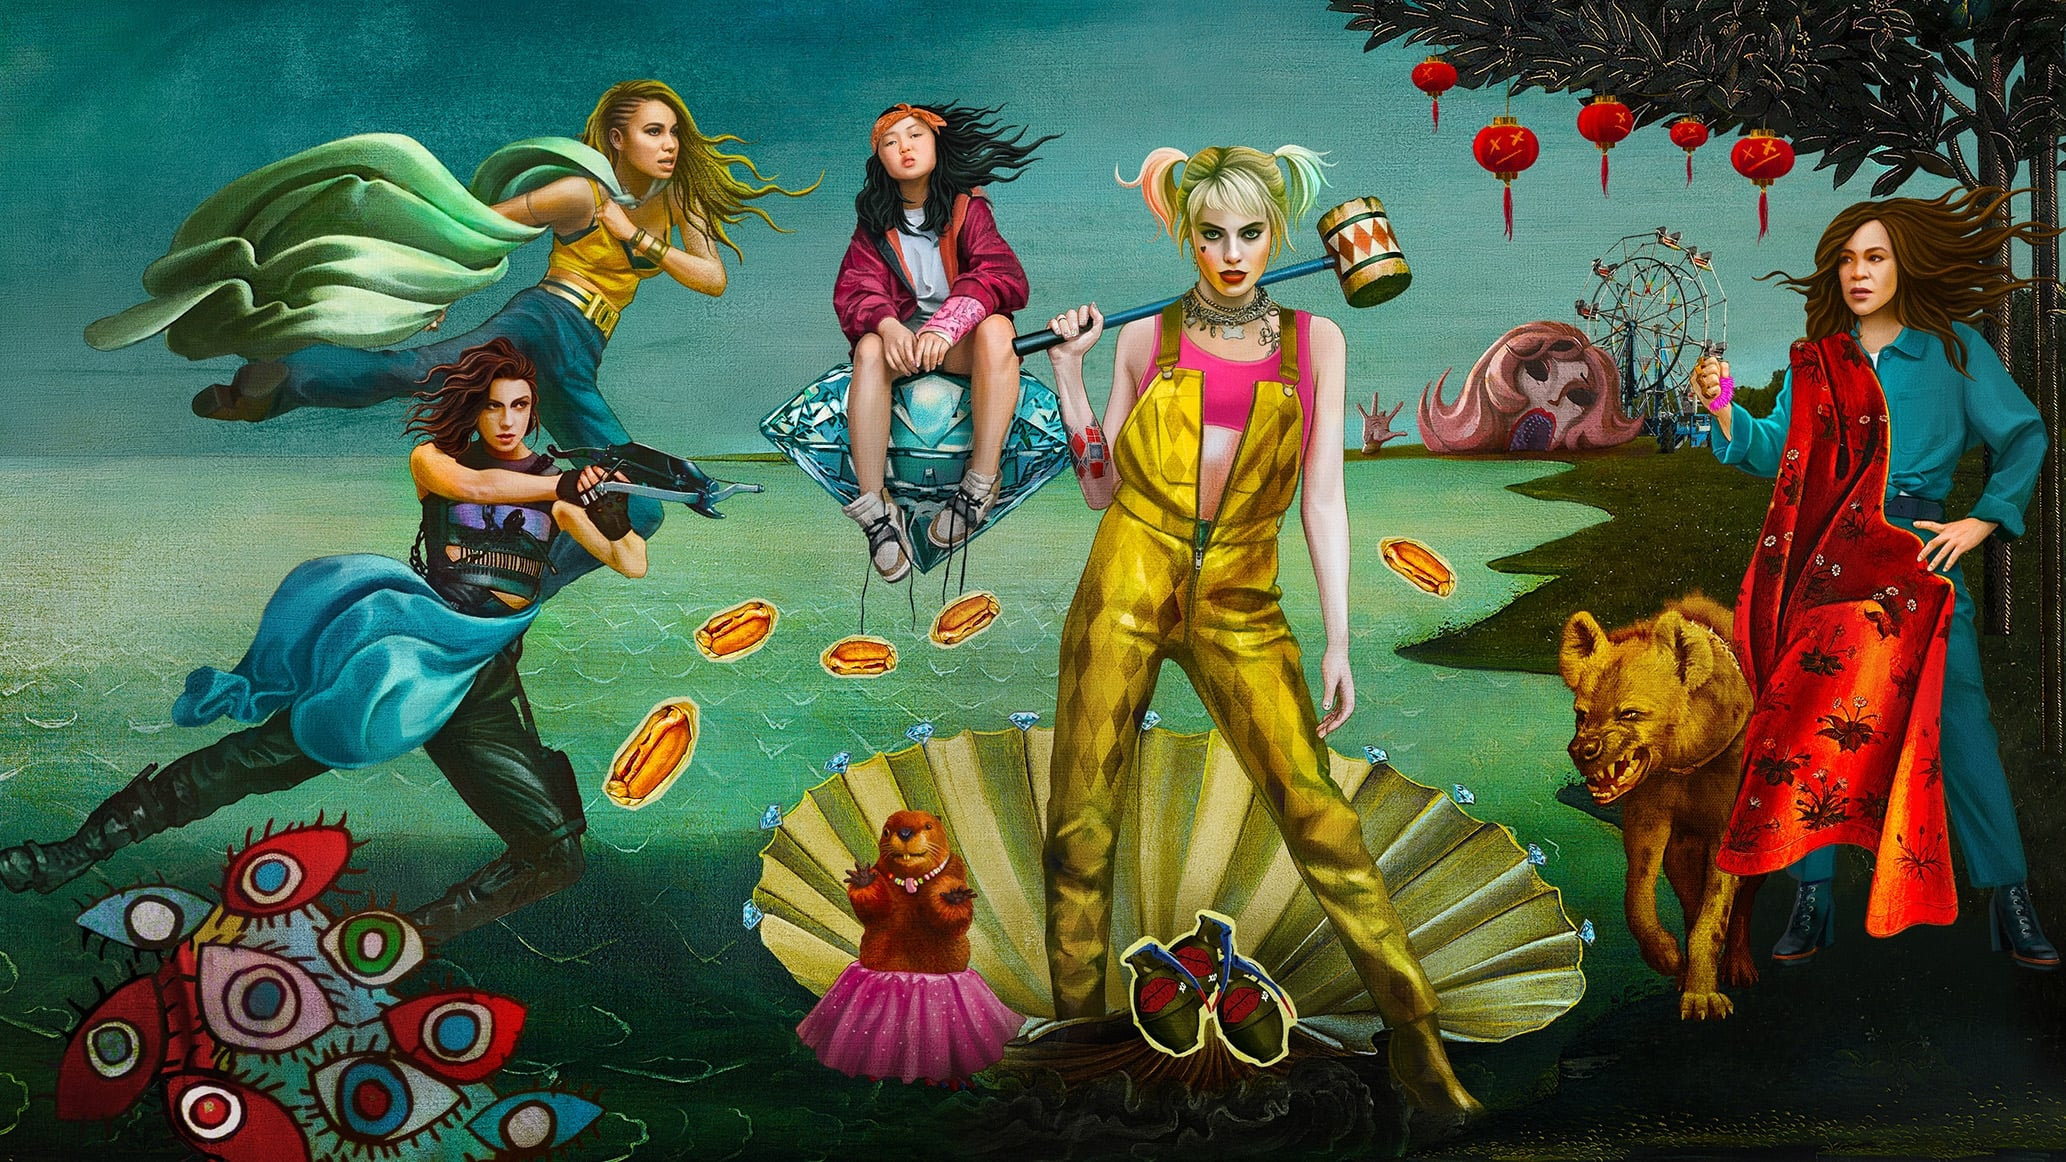 Birds of Prey (and the Fantabulous Emancipation of One Harley Quinn) [2020]